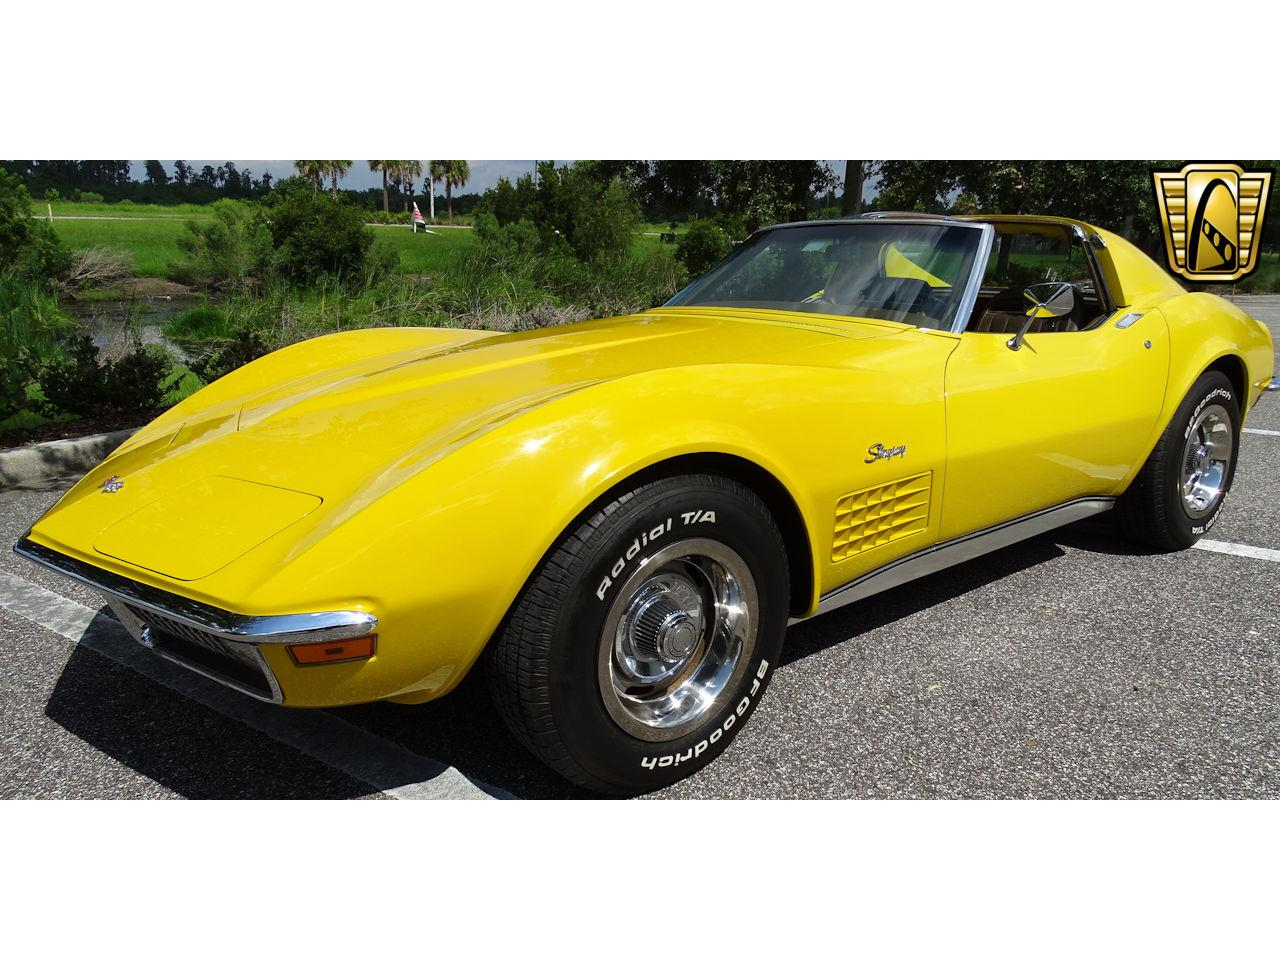 Large Picture of Classic '71 Chevrolet Corvette located in Florida - $28,995.00 Offered by Gateway Classic Cars - Tampa - LOPO